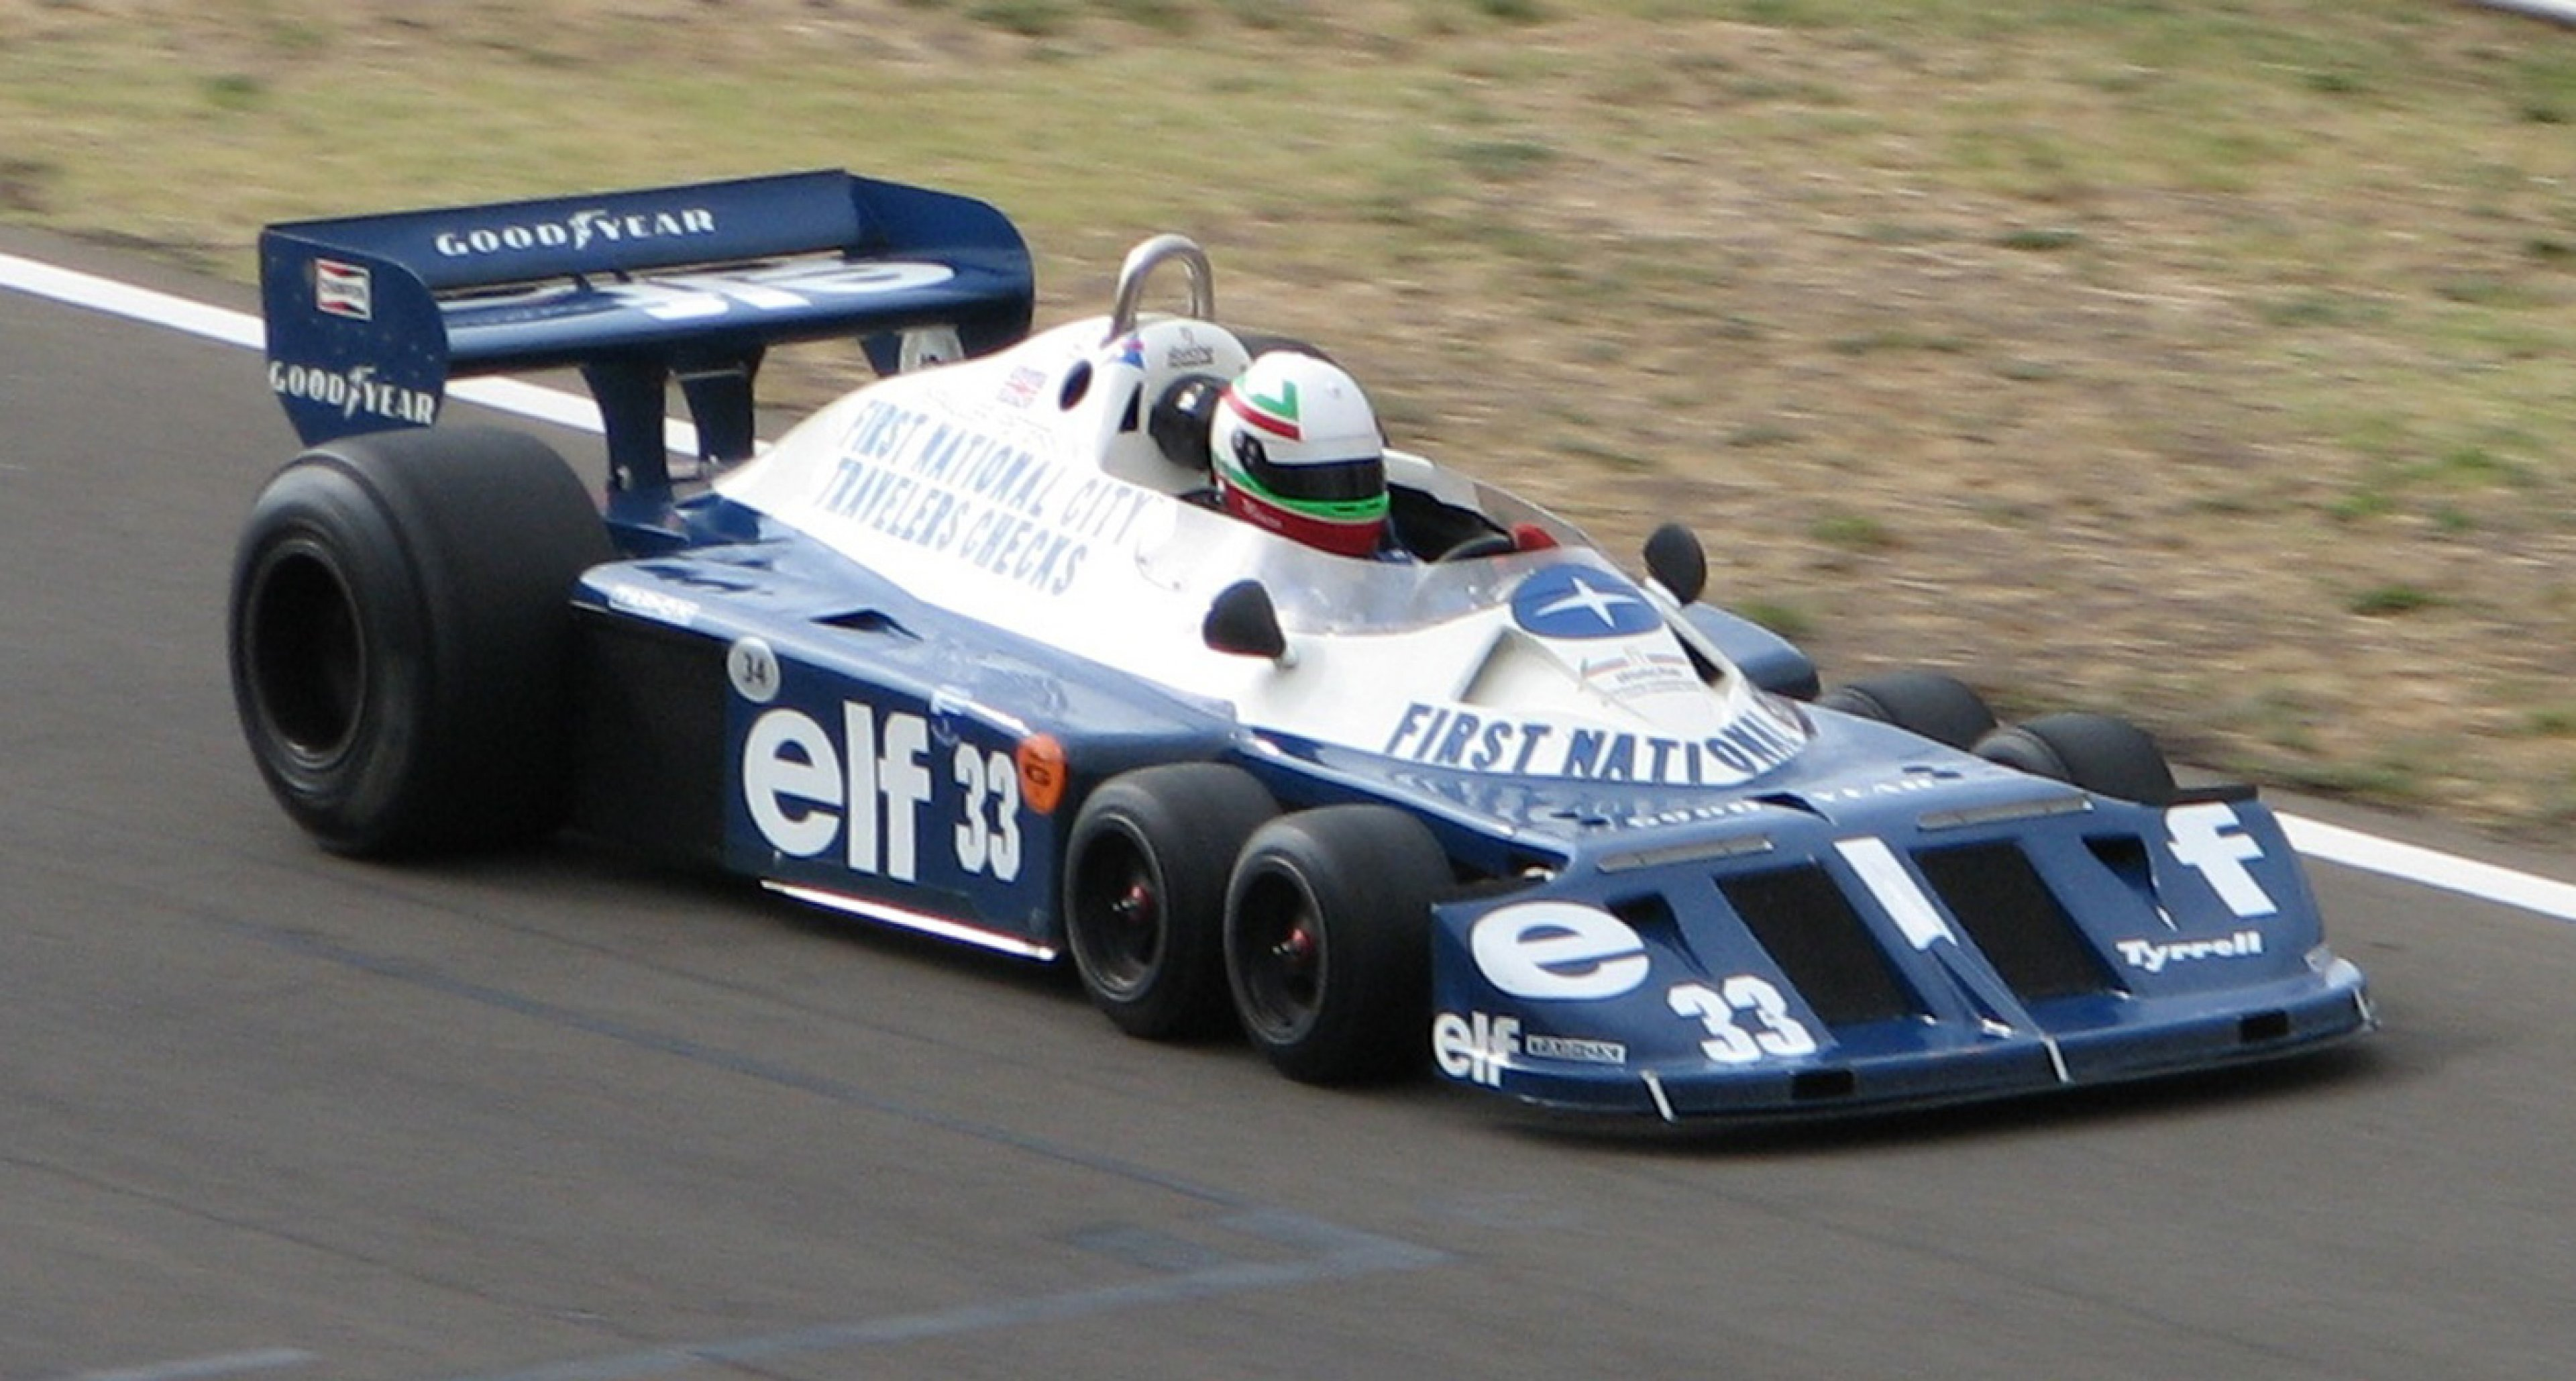 Tyrrell's famous P34 Formula 1 car of 1976